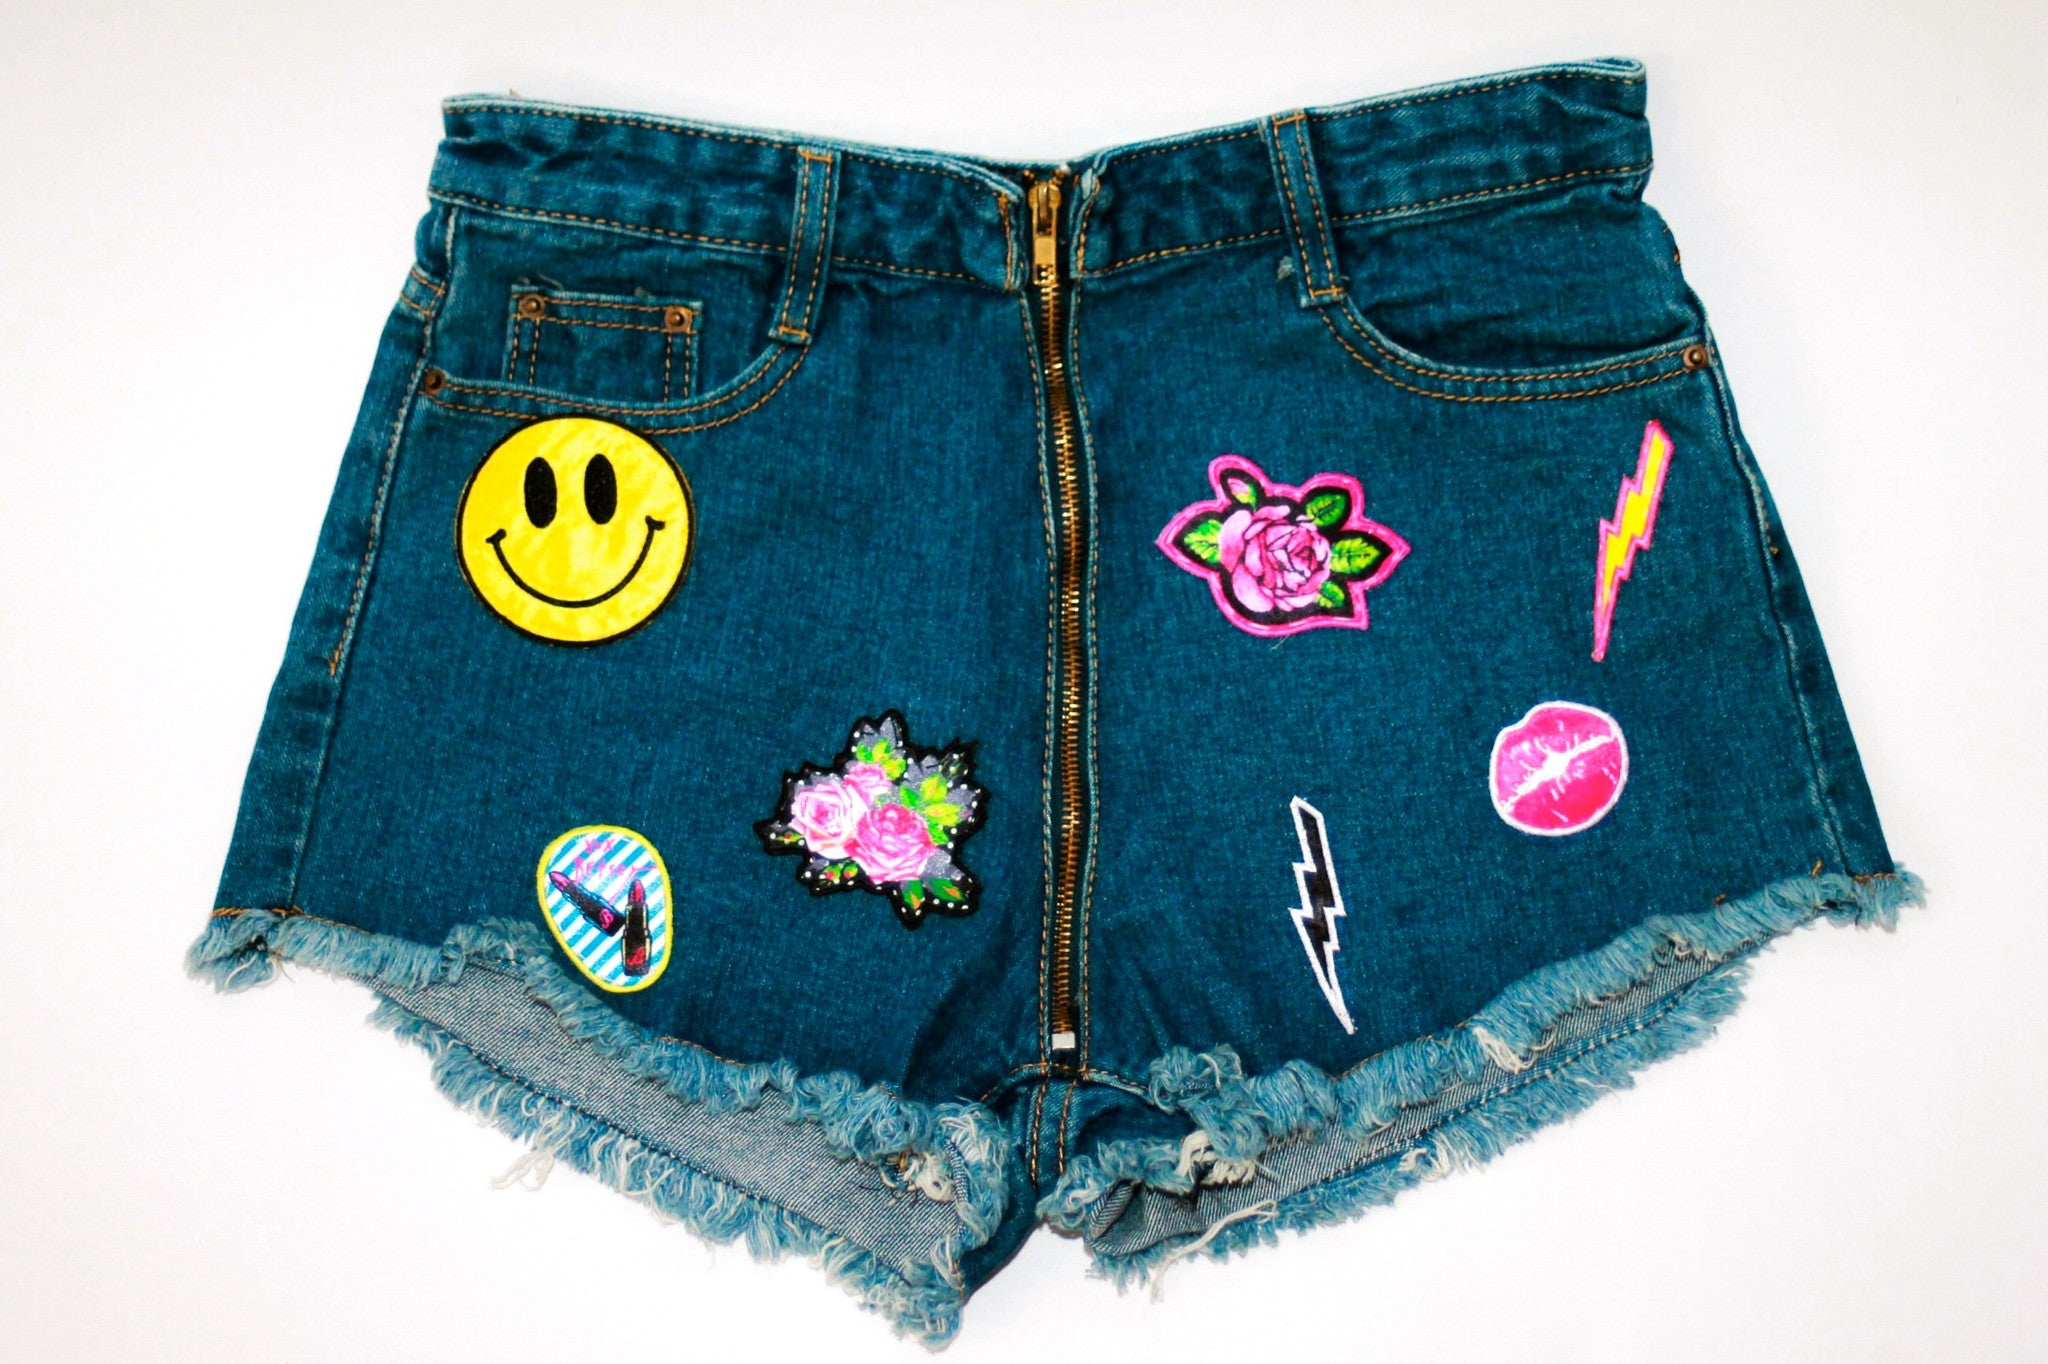 Custom 7ven x Betsey Johnson Patched Shorts #7